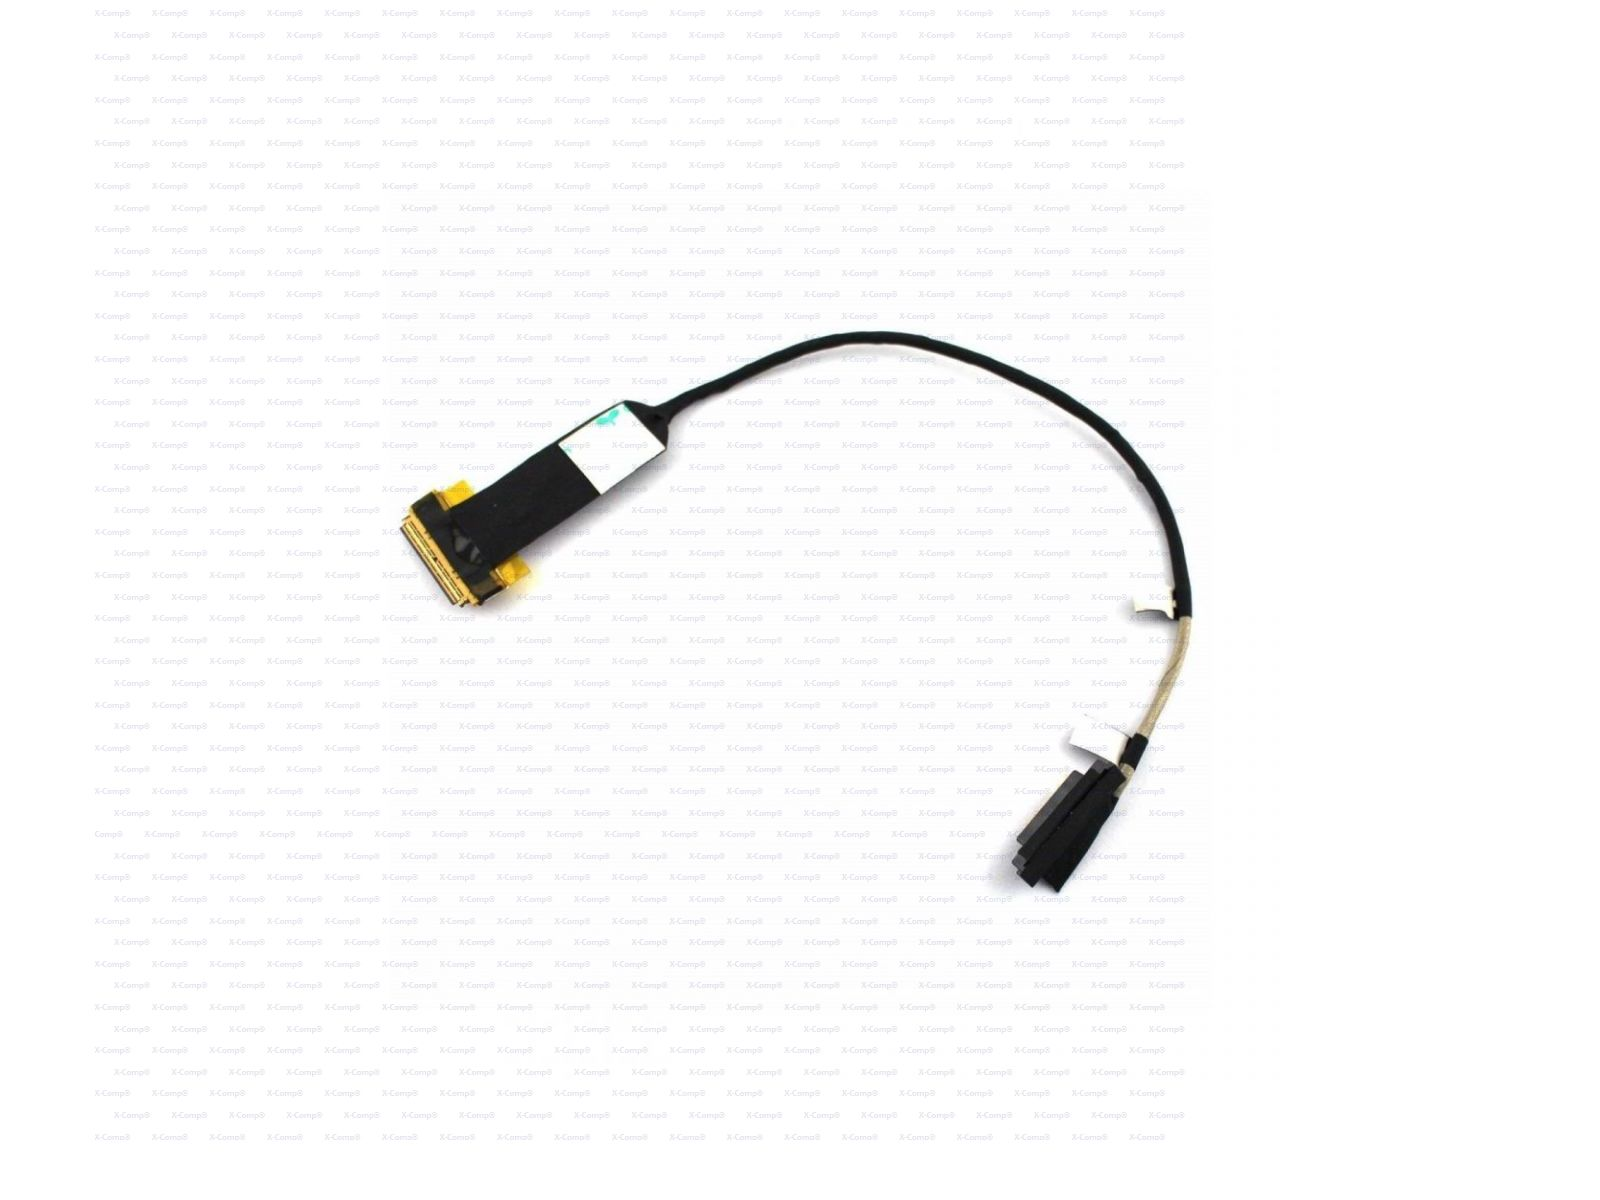 Display LCD Video Kabel BA39-01314A für Samsung Ativ Tab 7 XE700T1C-A01BE